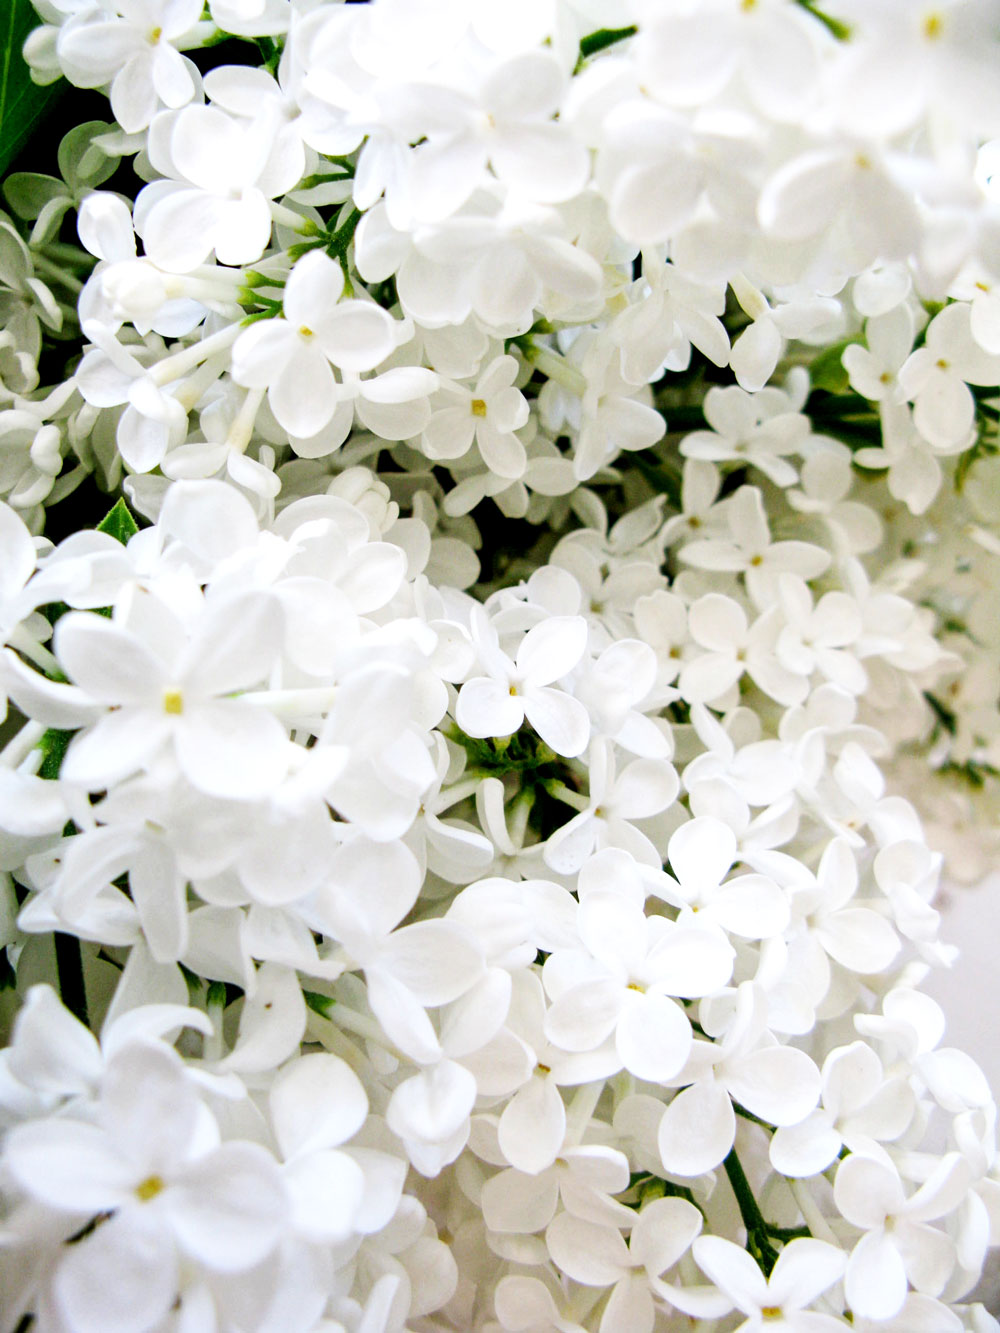 Zuri_Zuberi_flowers_white_3